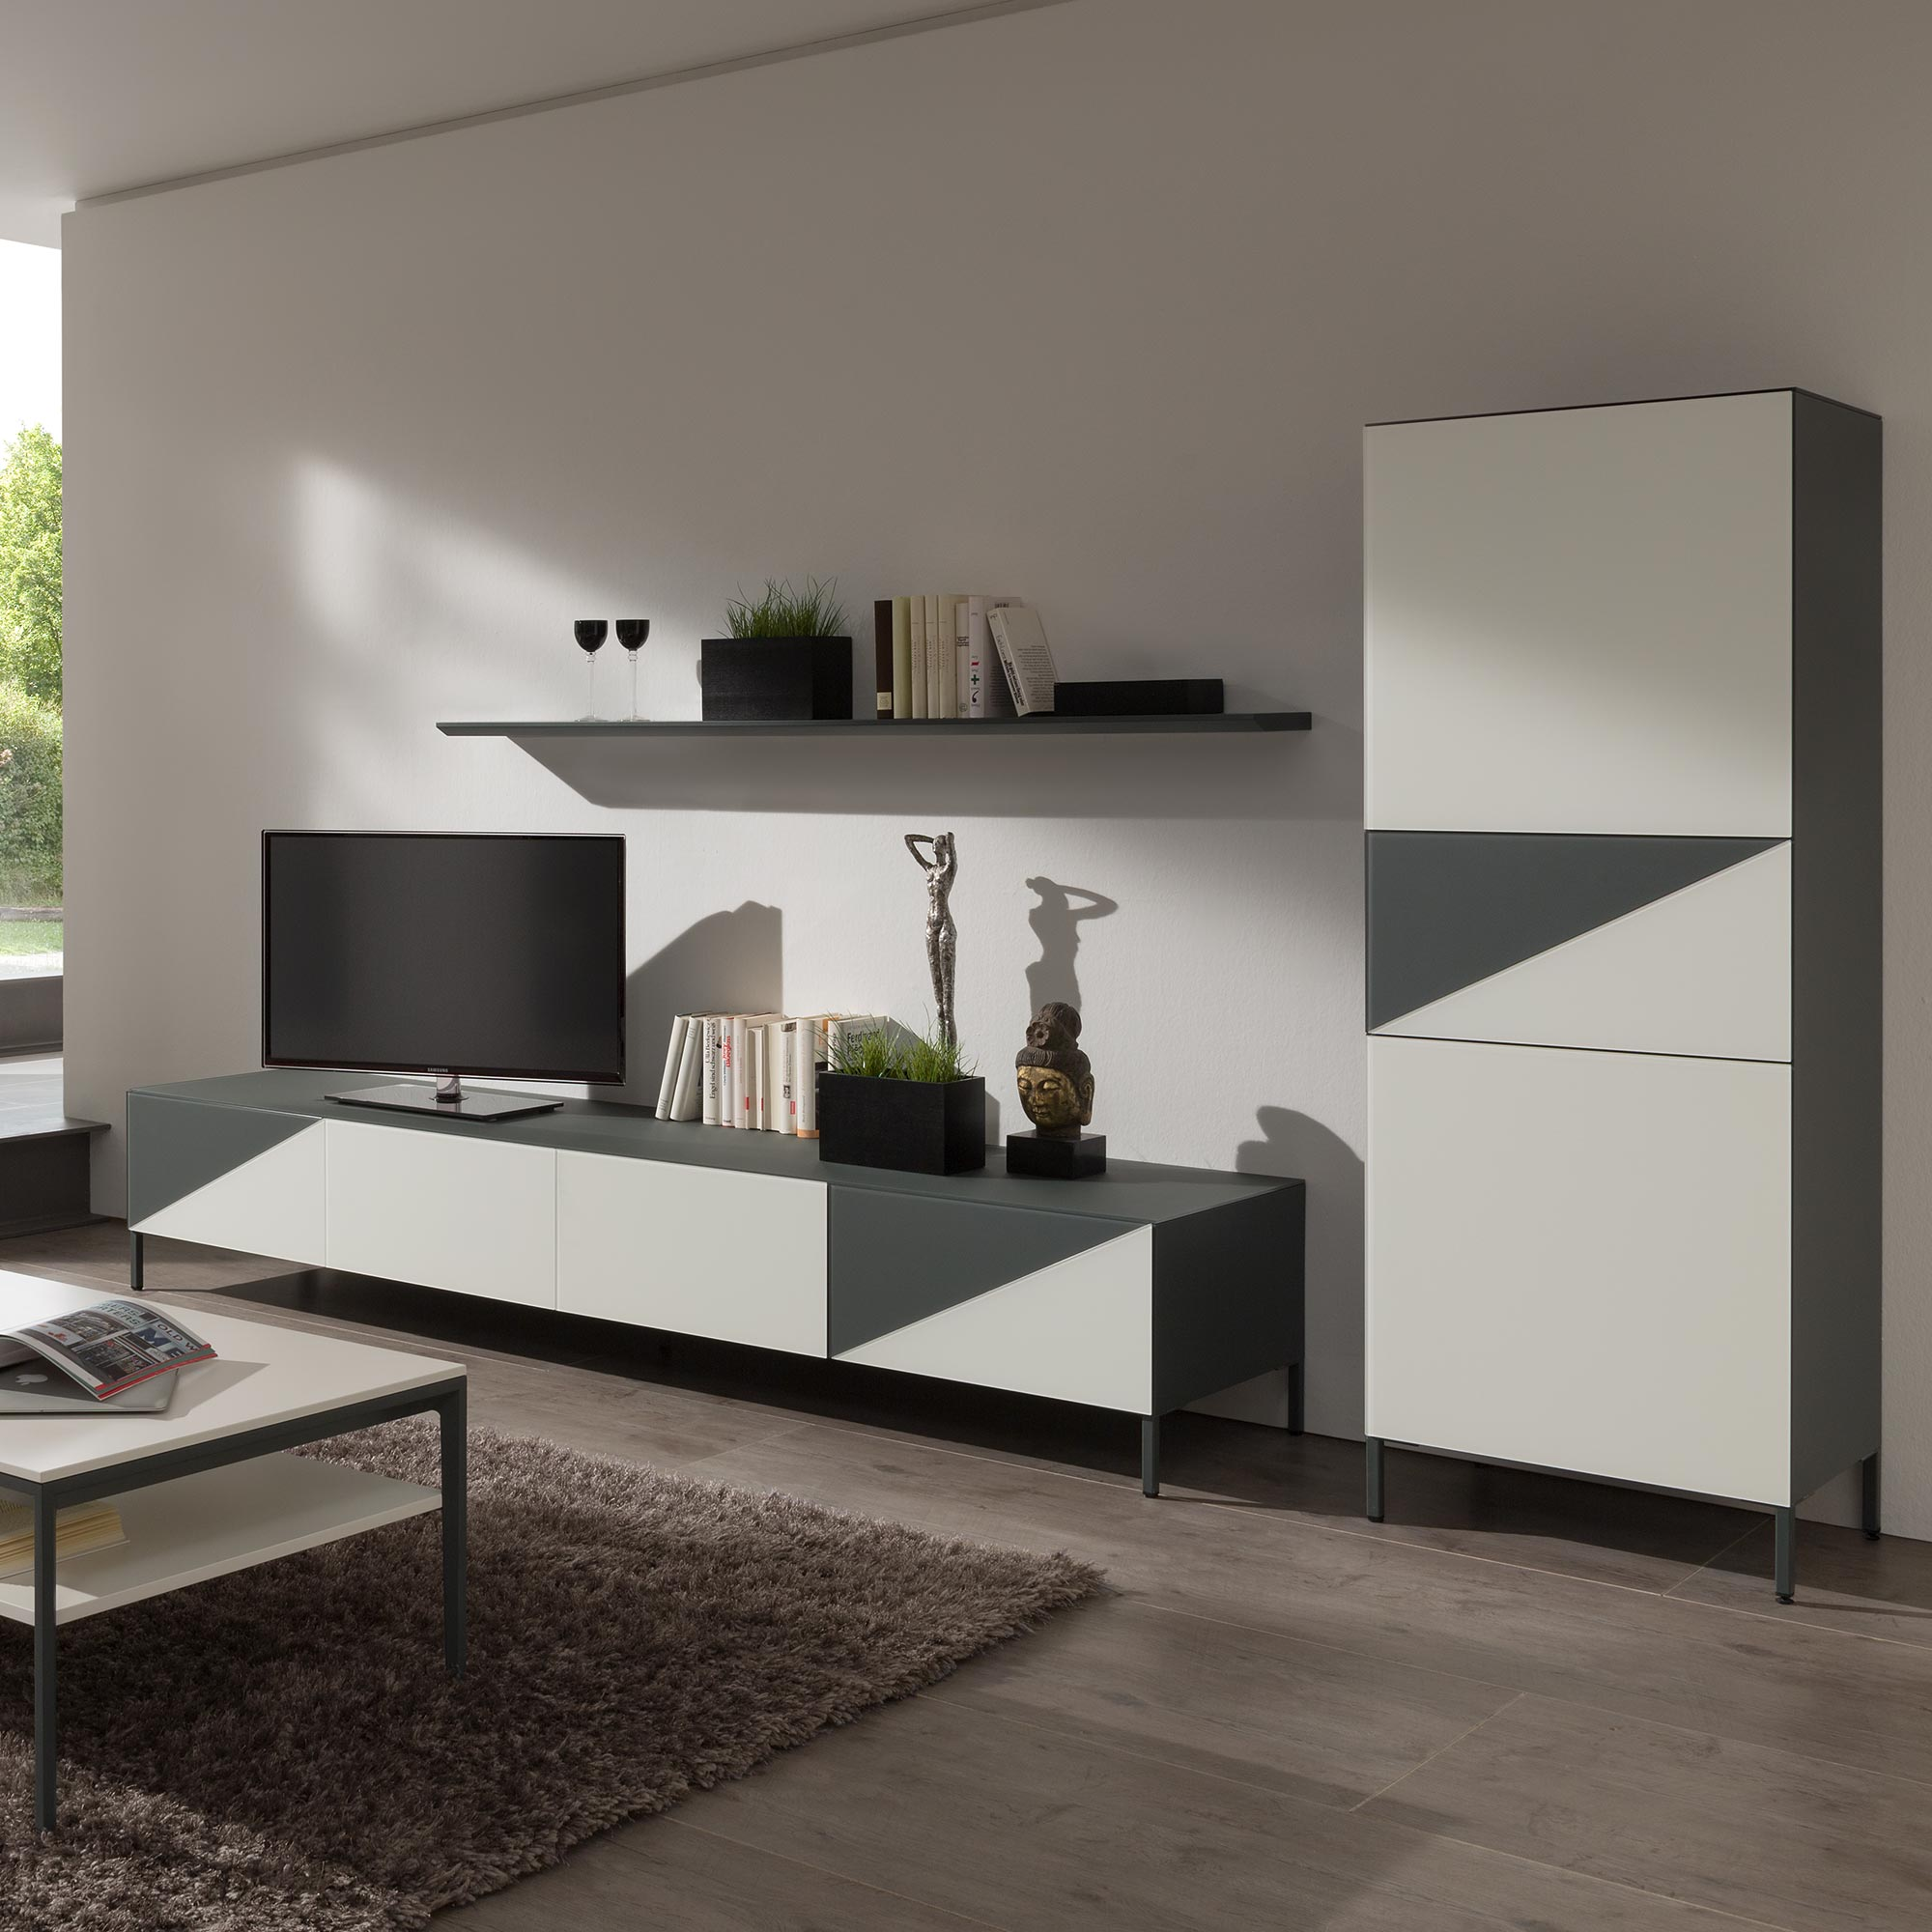 ayla highboard anthrazit weiss von mab m bel b r ag. Black Bedroom Furniture Sets. Home Design Ideas